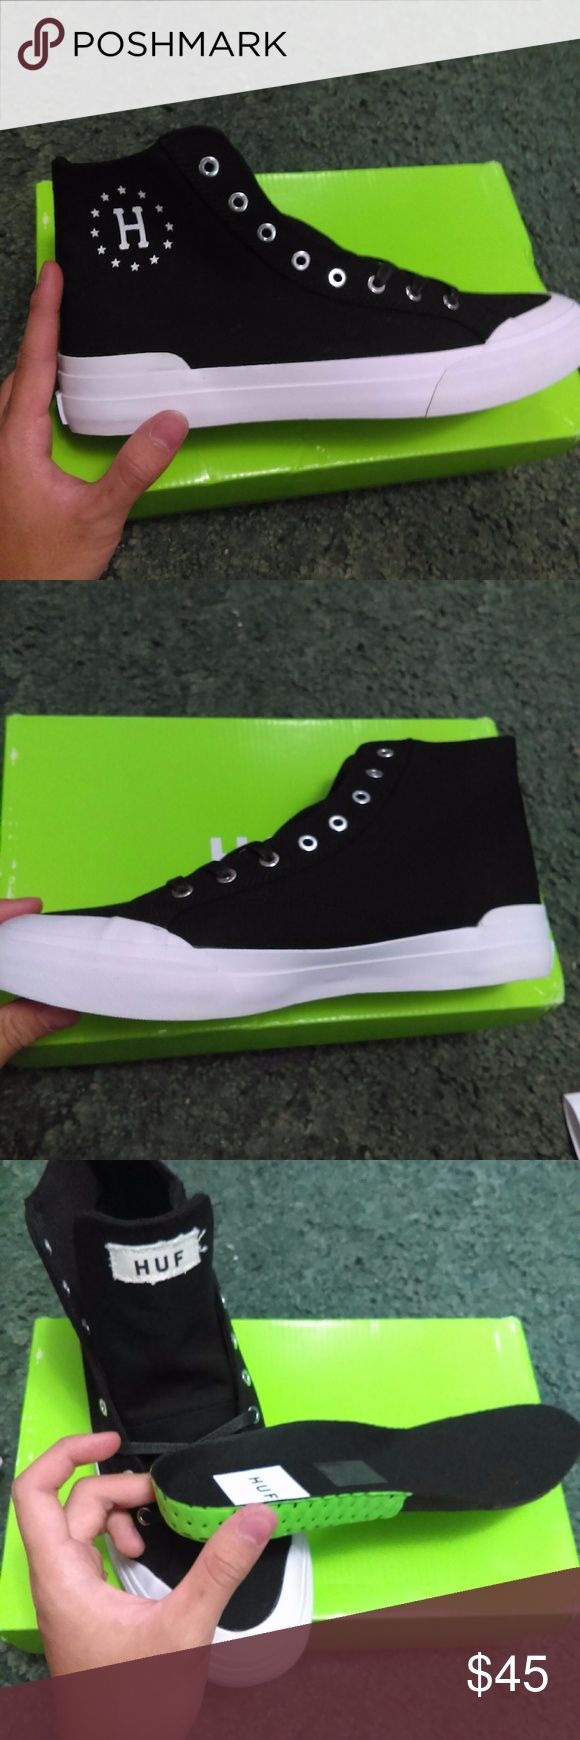 *repost* HUF skate shoes sneakers high top accidentally click accept on somebody's offers and had to repost it since they won't let me edit it * Brand new with box, size 8.5, need it gone ASAP* *original price $70.00* reasons to sell is because I need money to buy a new phone HUF Shoes Sneakers